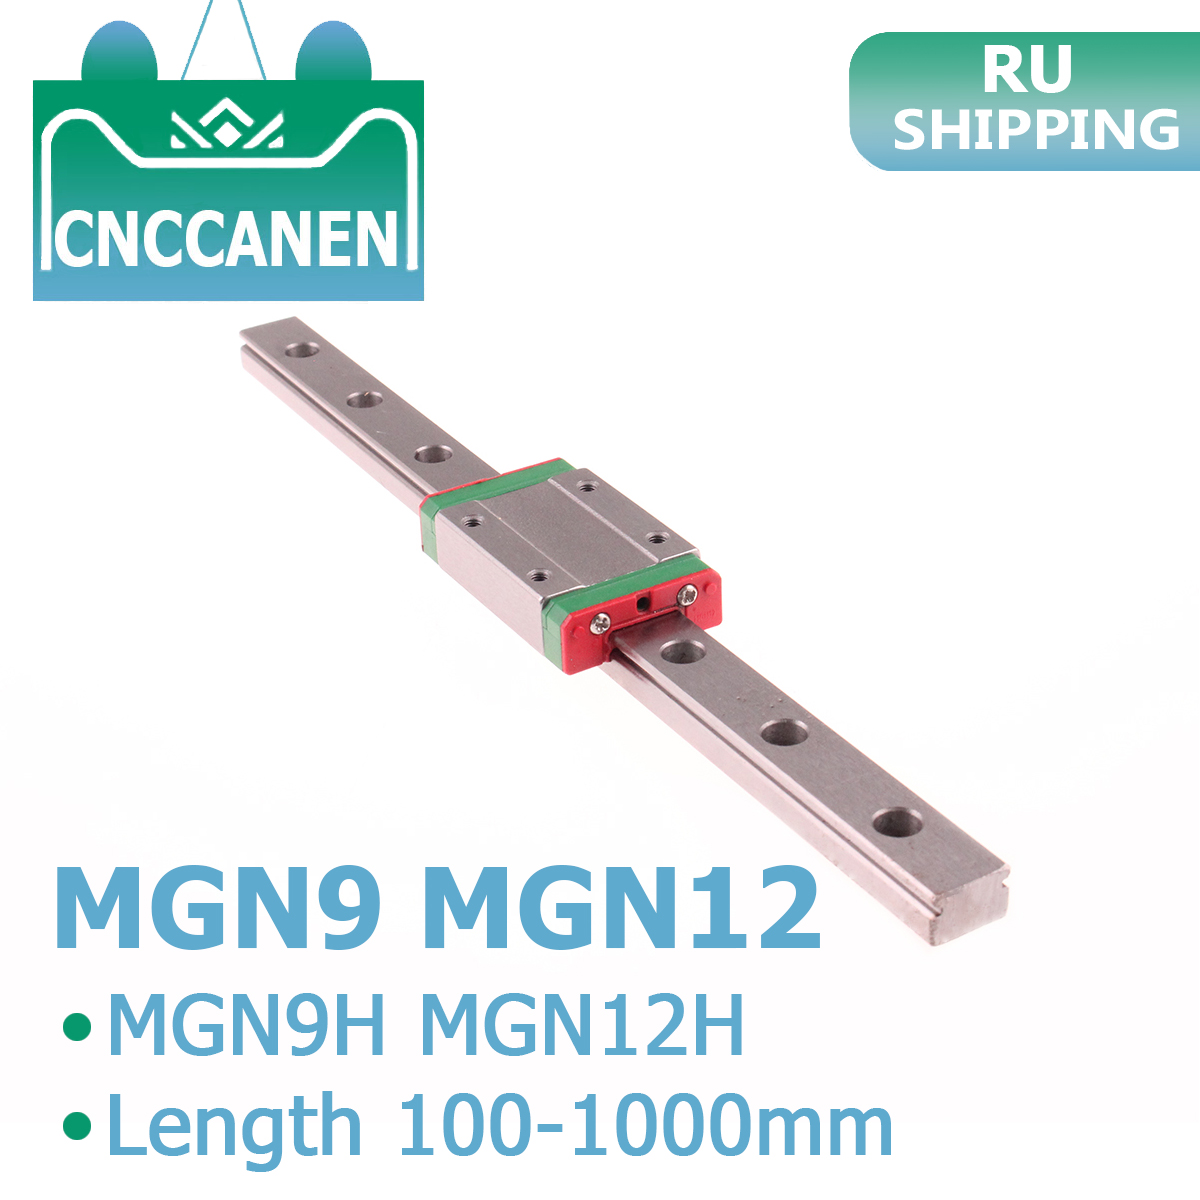 CNC 3D Printer MGN9 MGN12 100mm - 1000mm 300 600mm Miniature Linear Rail Slide 1PCS MGN Linear Guide MGN9H Carriage MGN12H Block